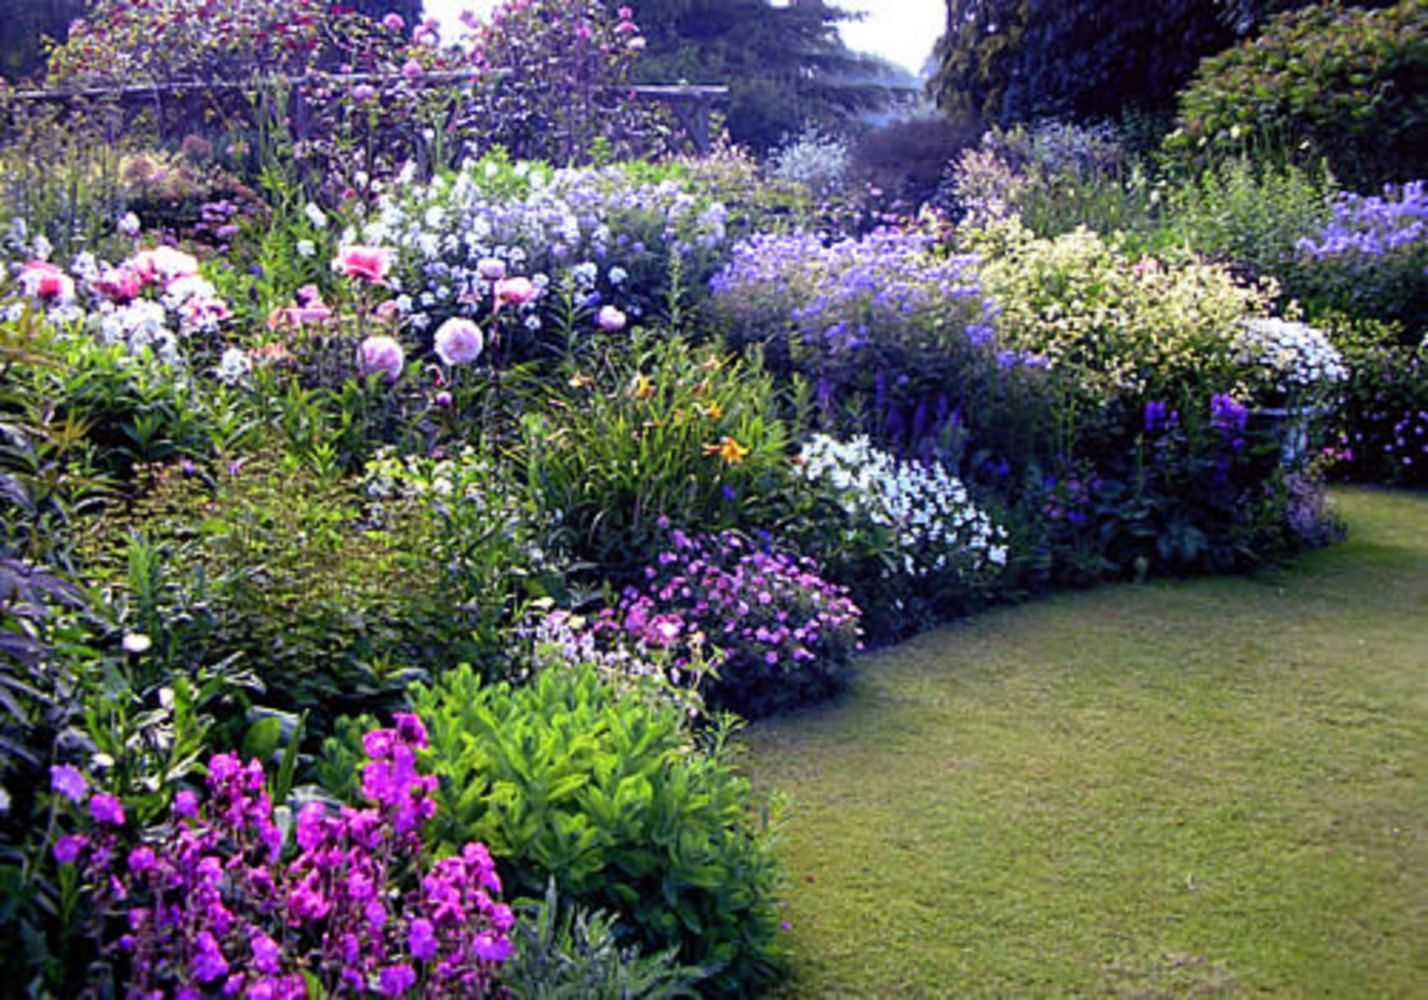 8b898b0156d9ef4e0f9cbc4914d173b7 - Pictures Of Beautiful Gardens For Small Homes